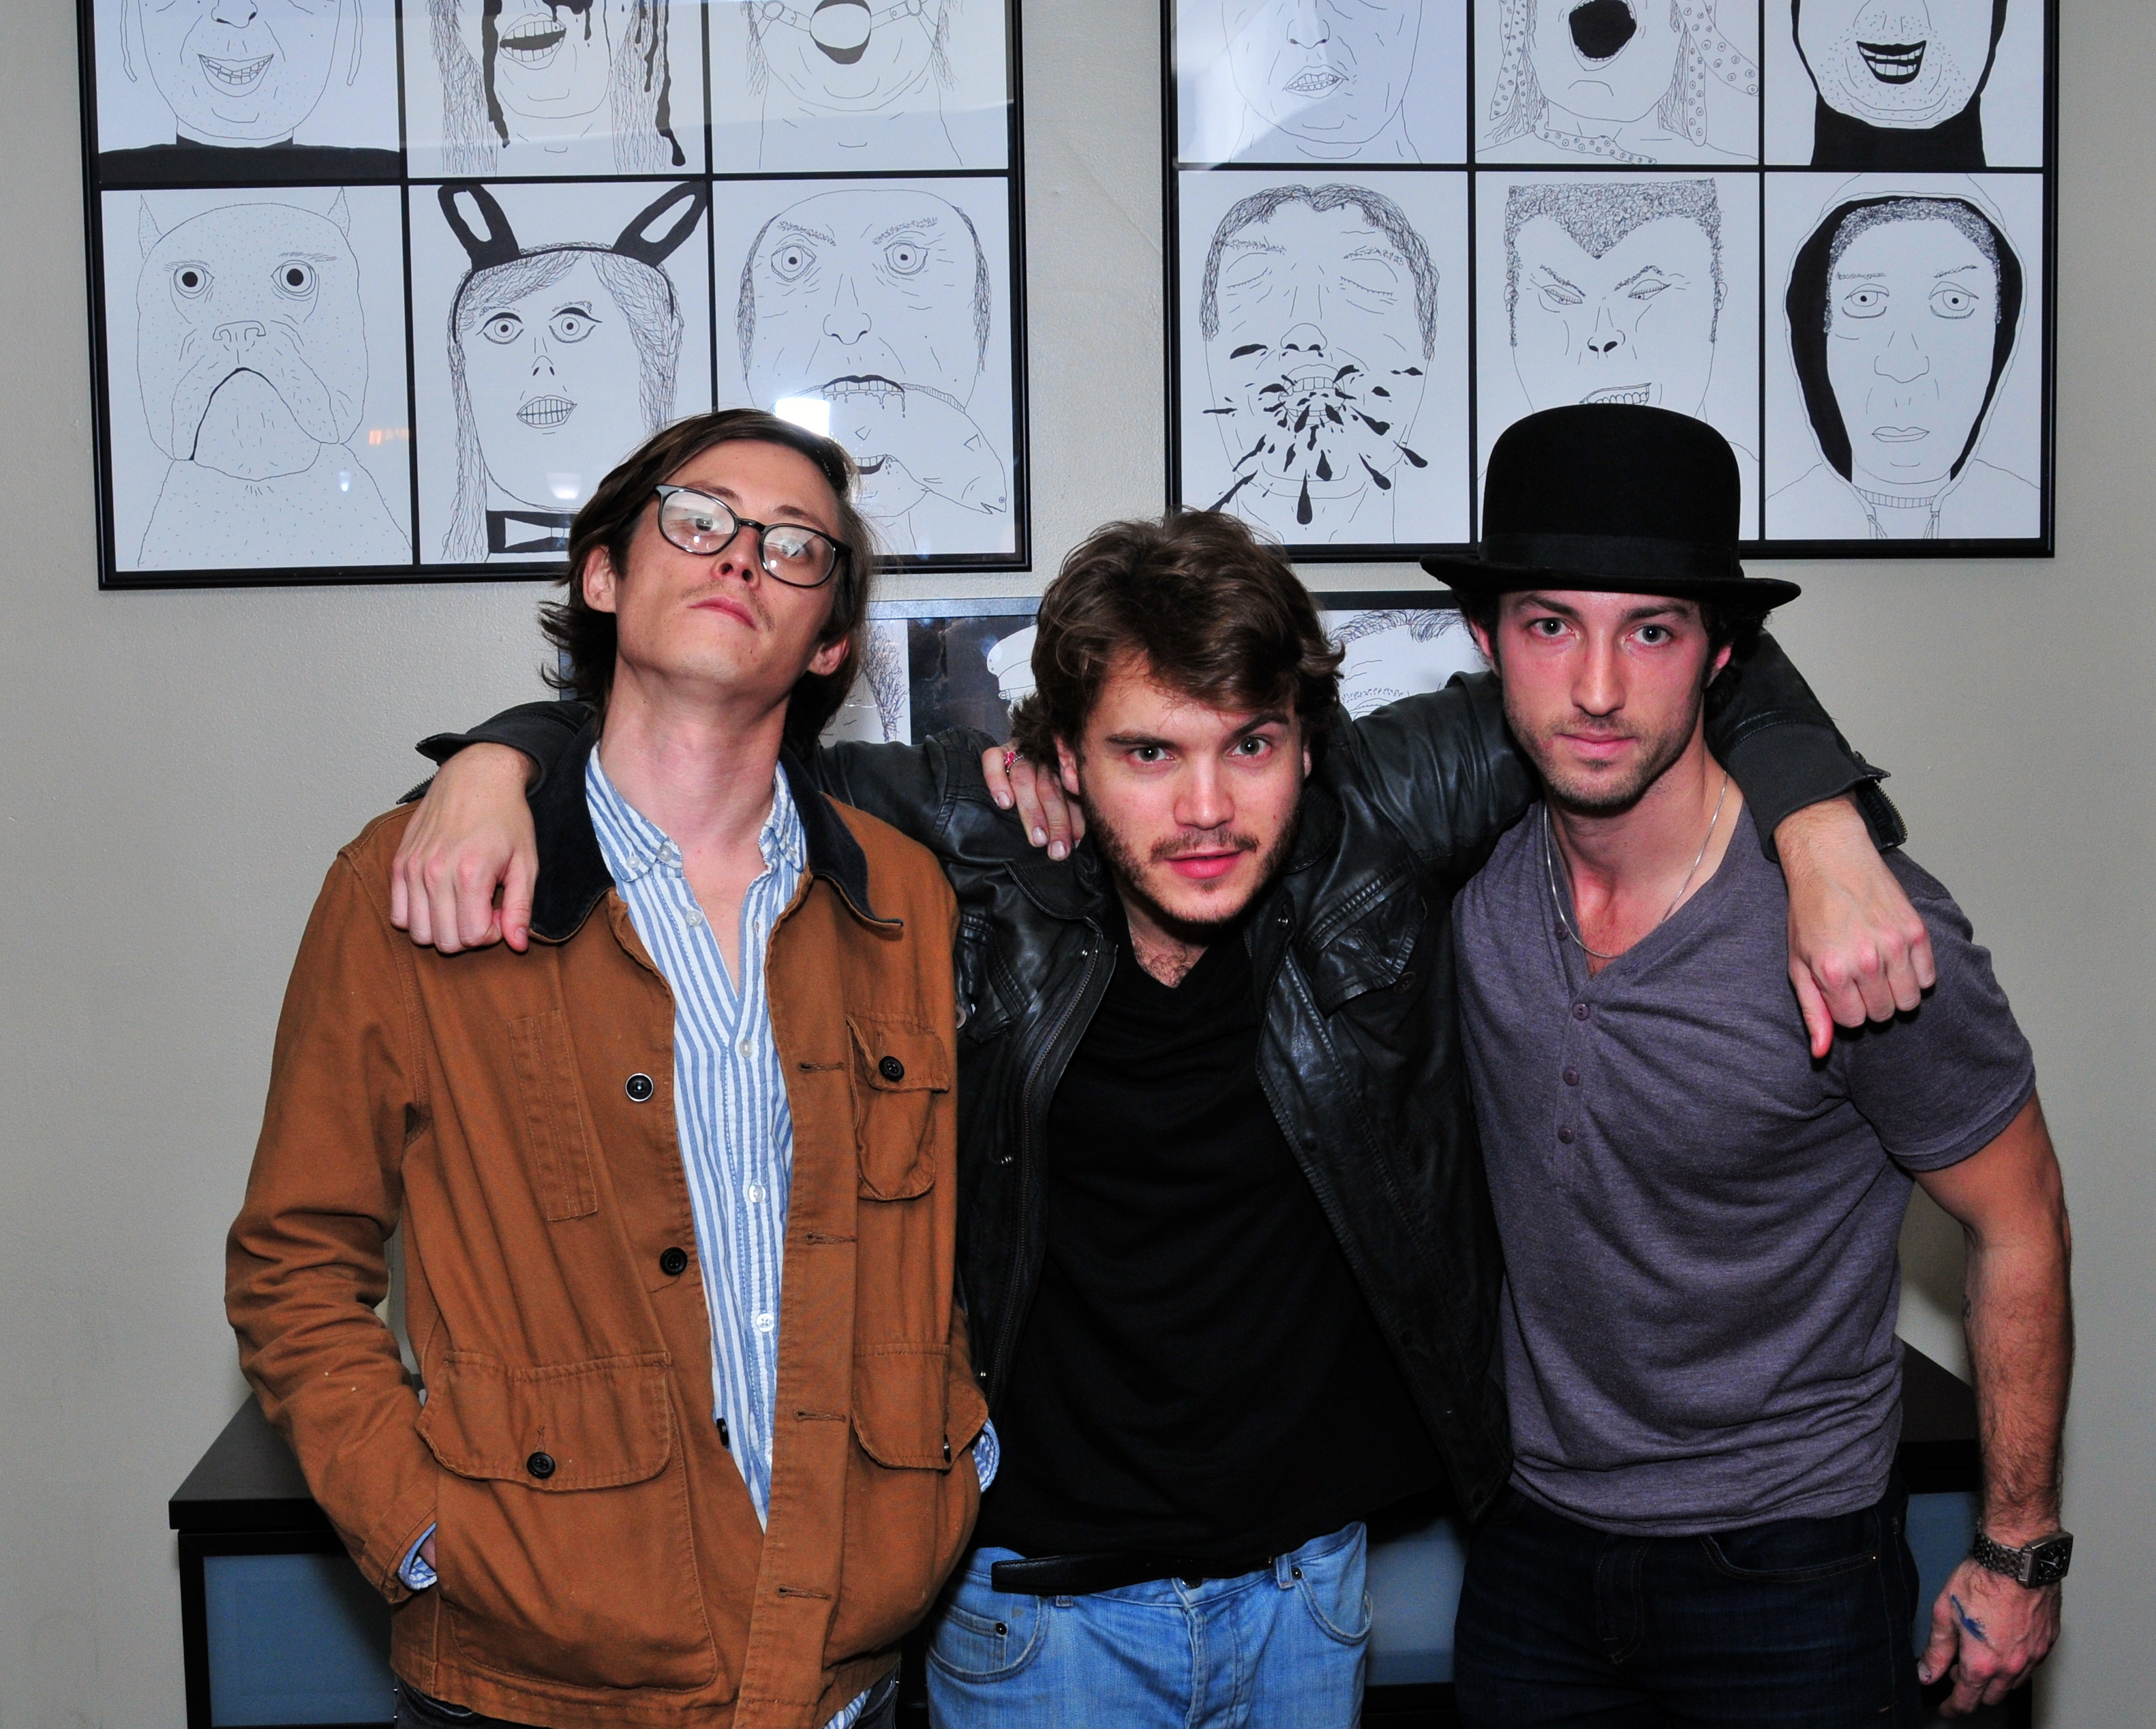 Ace Norton, Emile Hirsch, and Matt Smiley at the Hirsch / Norton / Smiley Art Show at 9 Olives on Sunset Blvd.